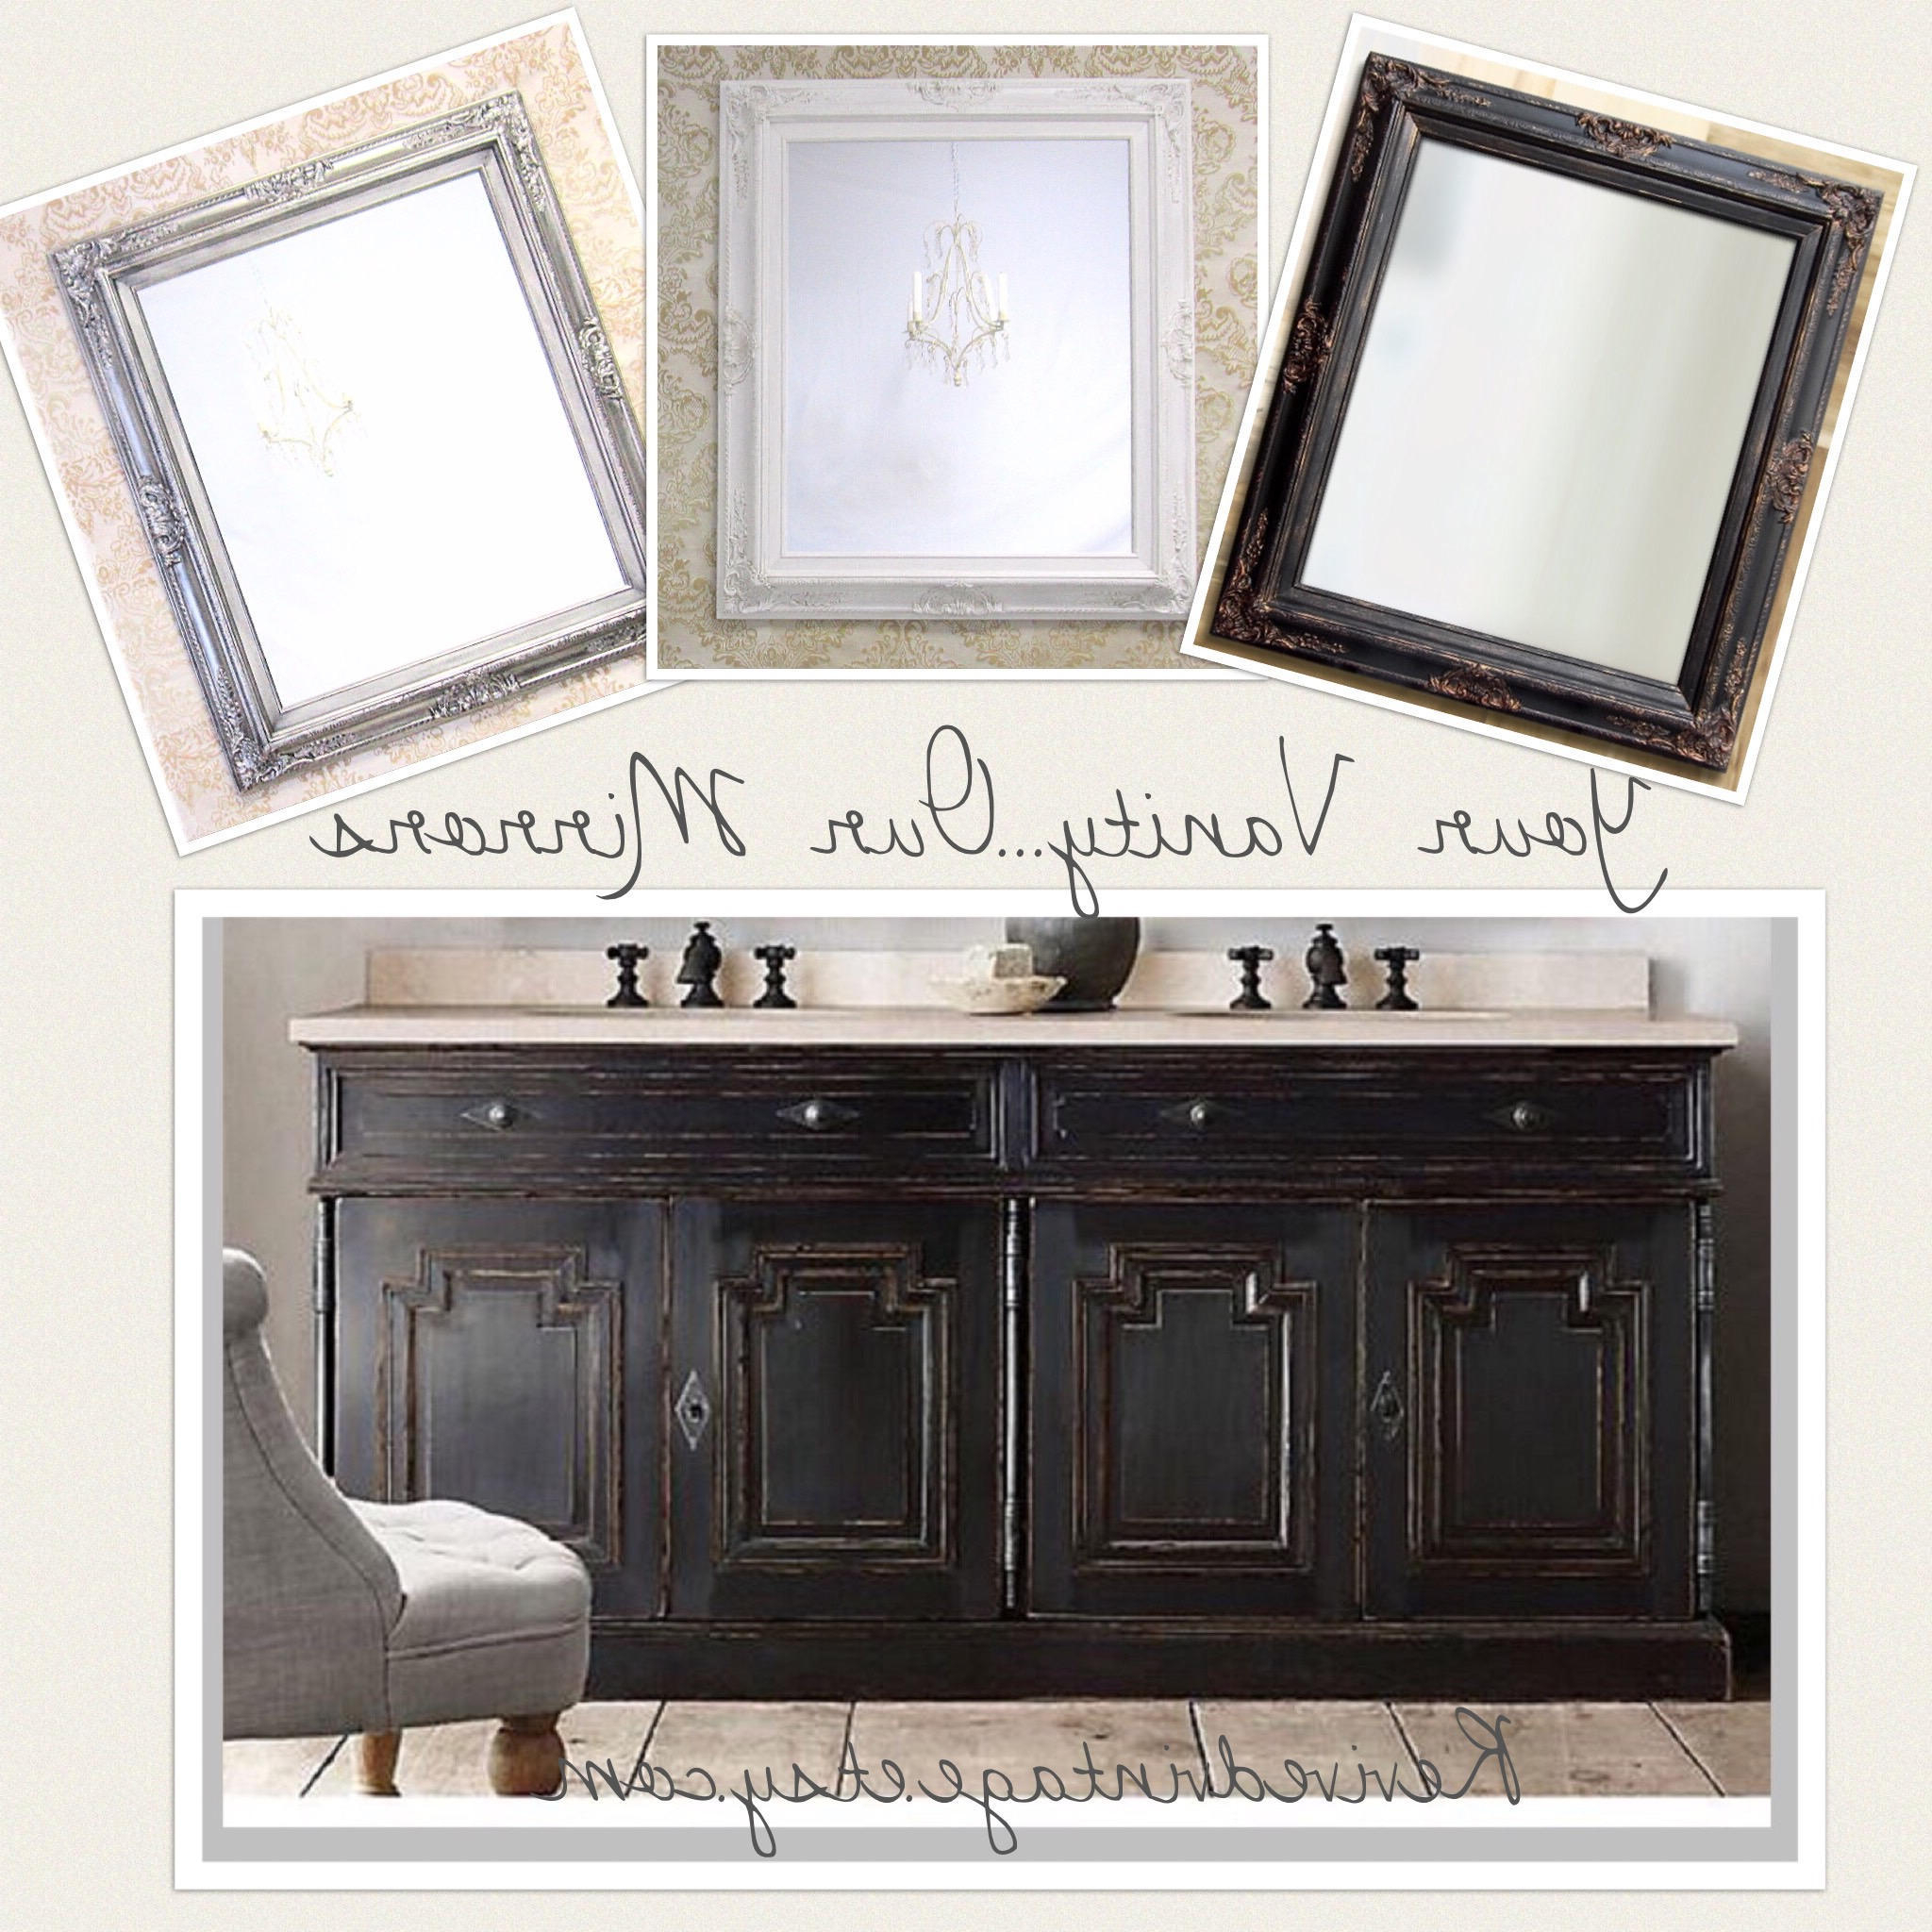 """Brushed Nickel Wall Mirrors For Bathroom With Regard To Favorite Bathroom Mirror Mirrors Brushed Nickel Accents Framed Baroque Bathroom  Vanity Wall Mirror 31""""x27"""" Decorative Ornate Unique Mirror Rectangle (View 19 of 20)"""